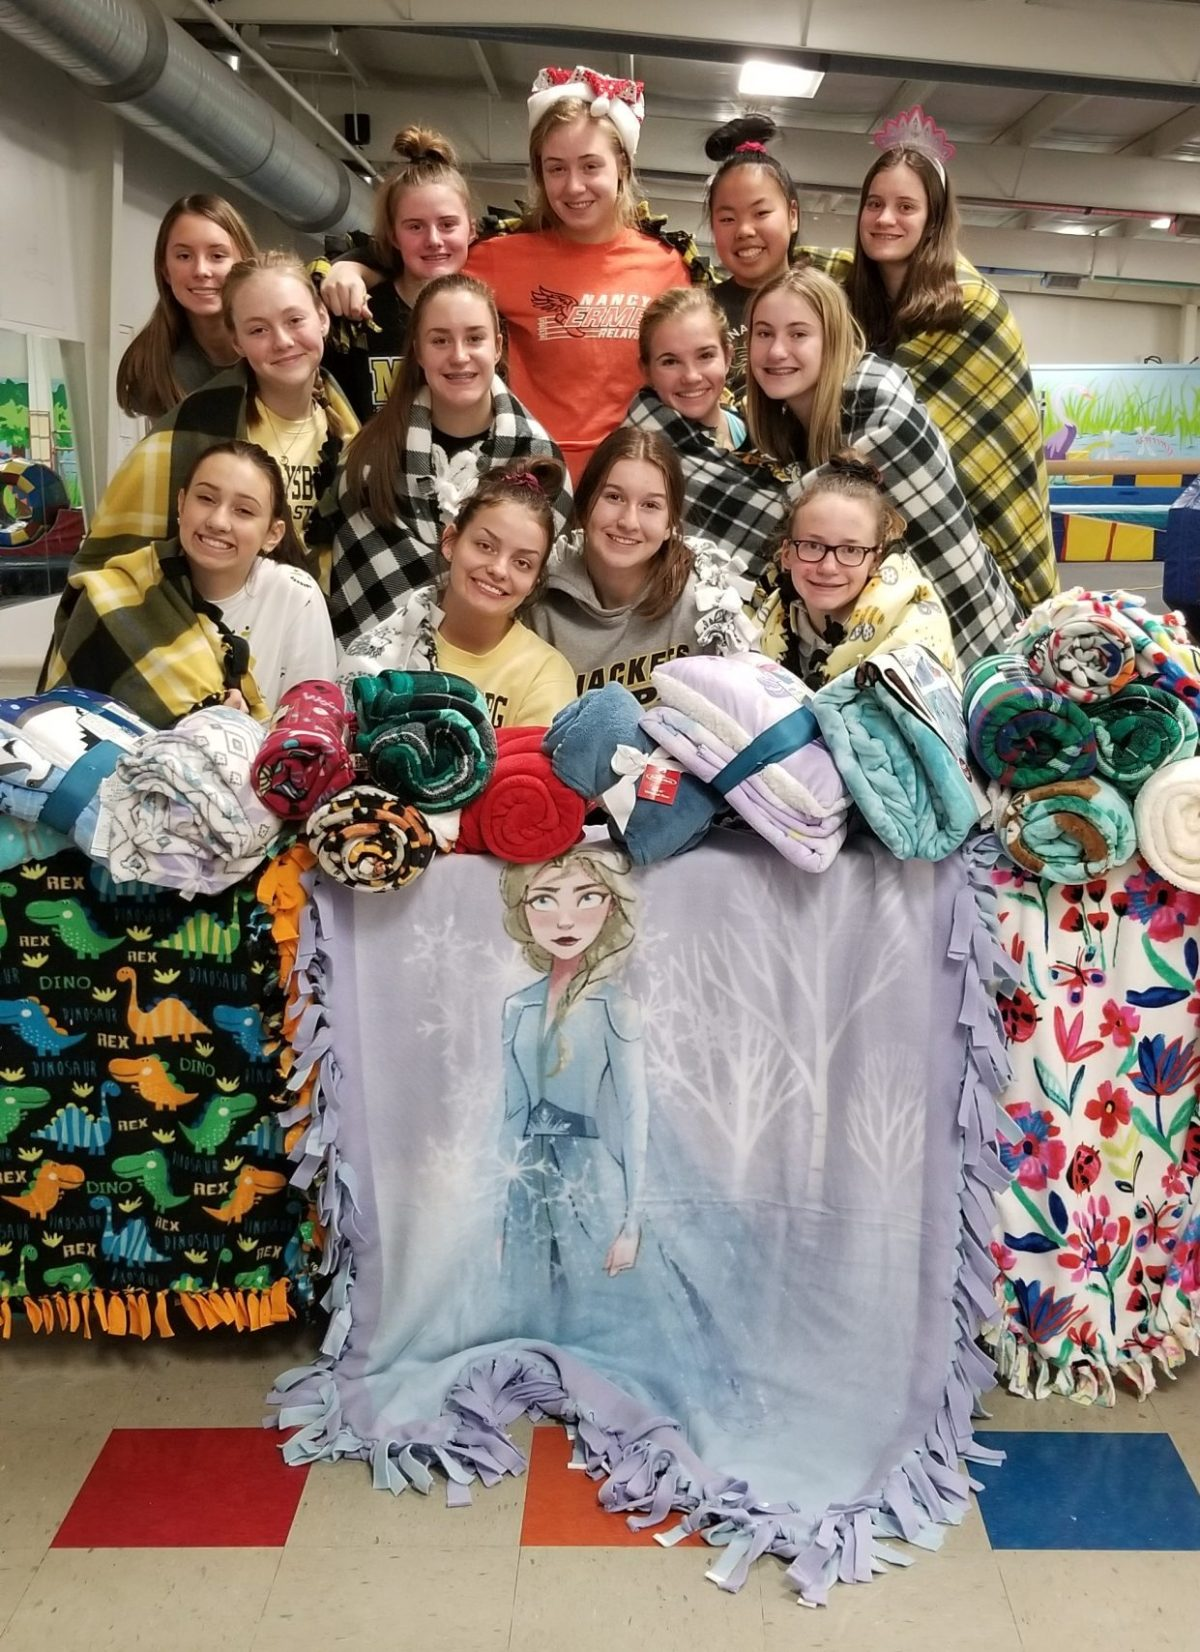 PHS Jacket Gymnasts helping with blanket making and food donations for the holidays…